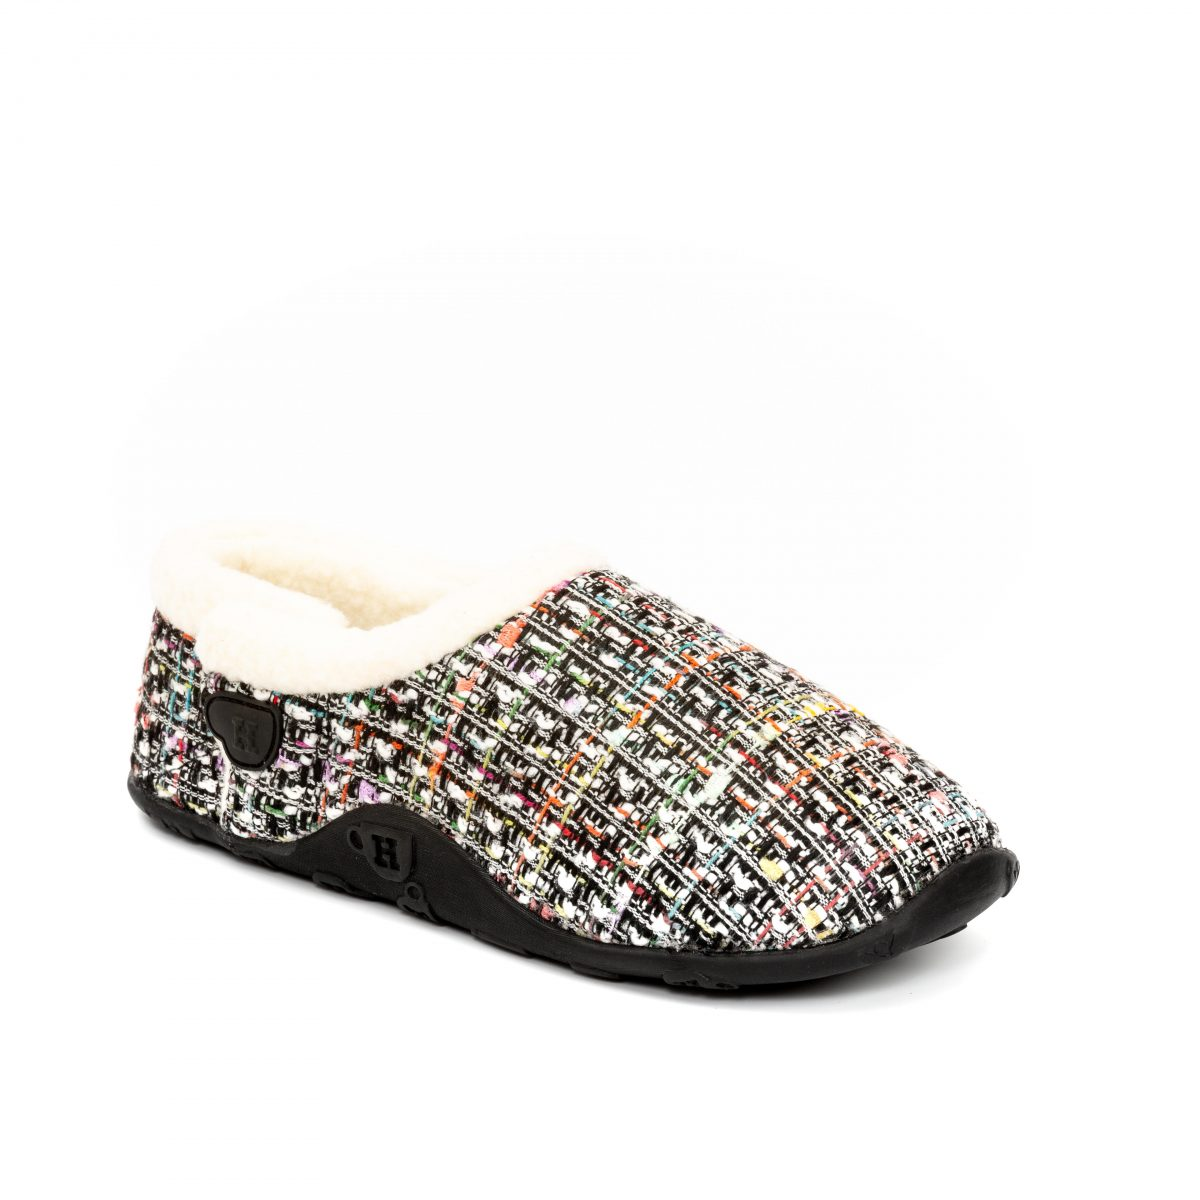 Coco Wht pnk blk tweed W 1 mr